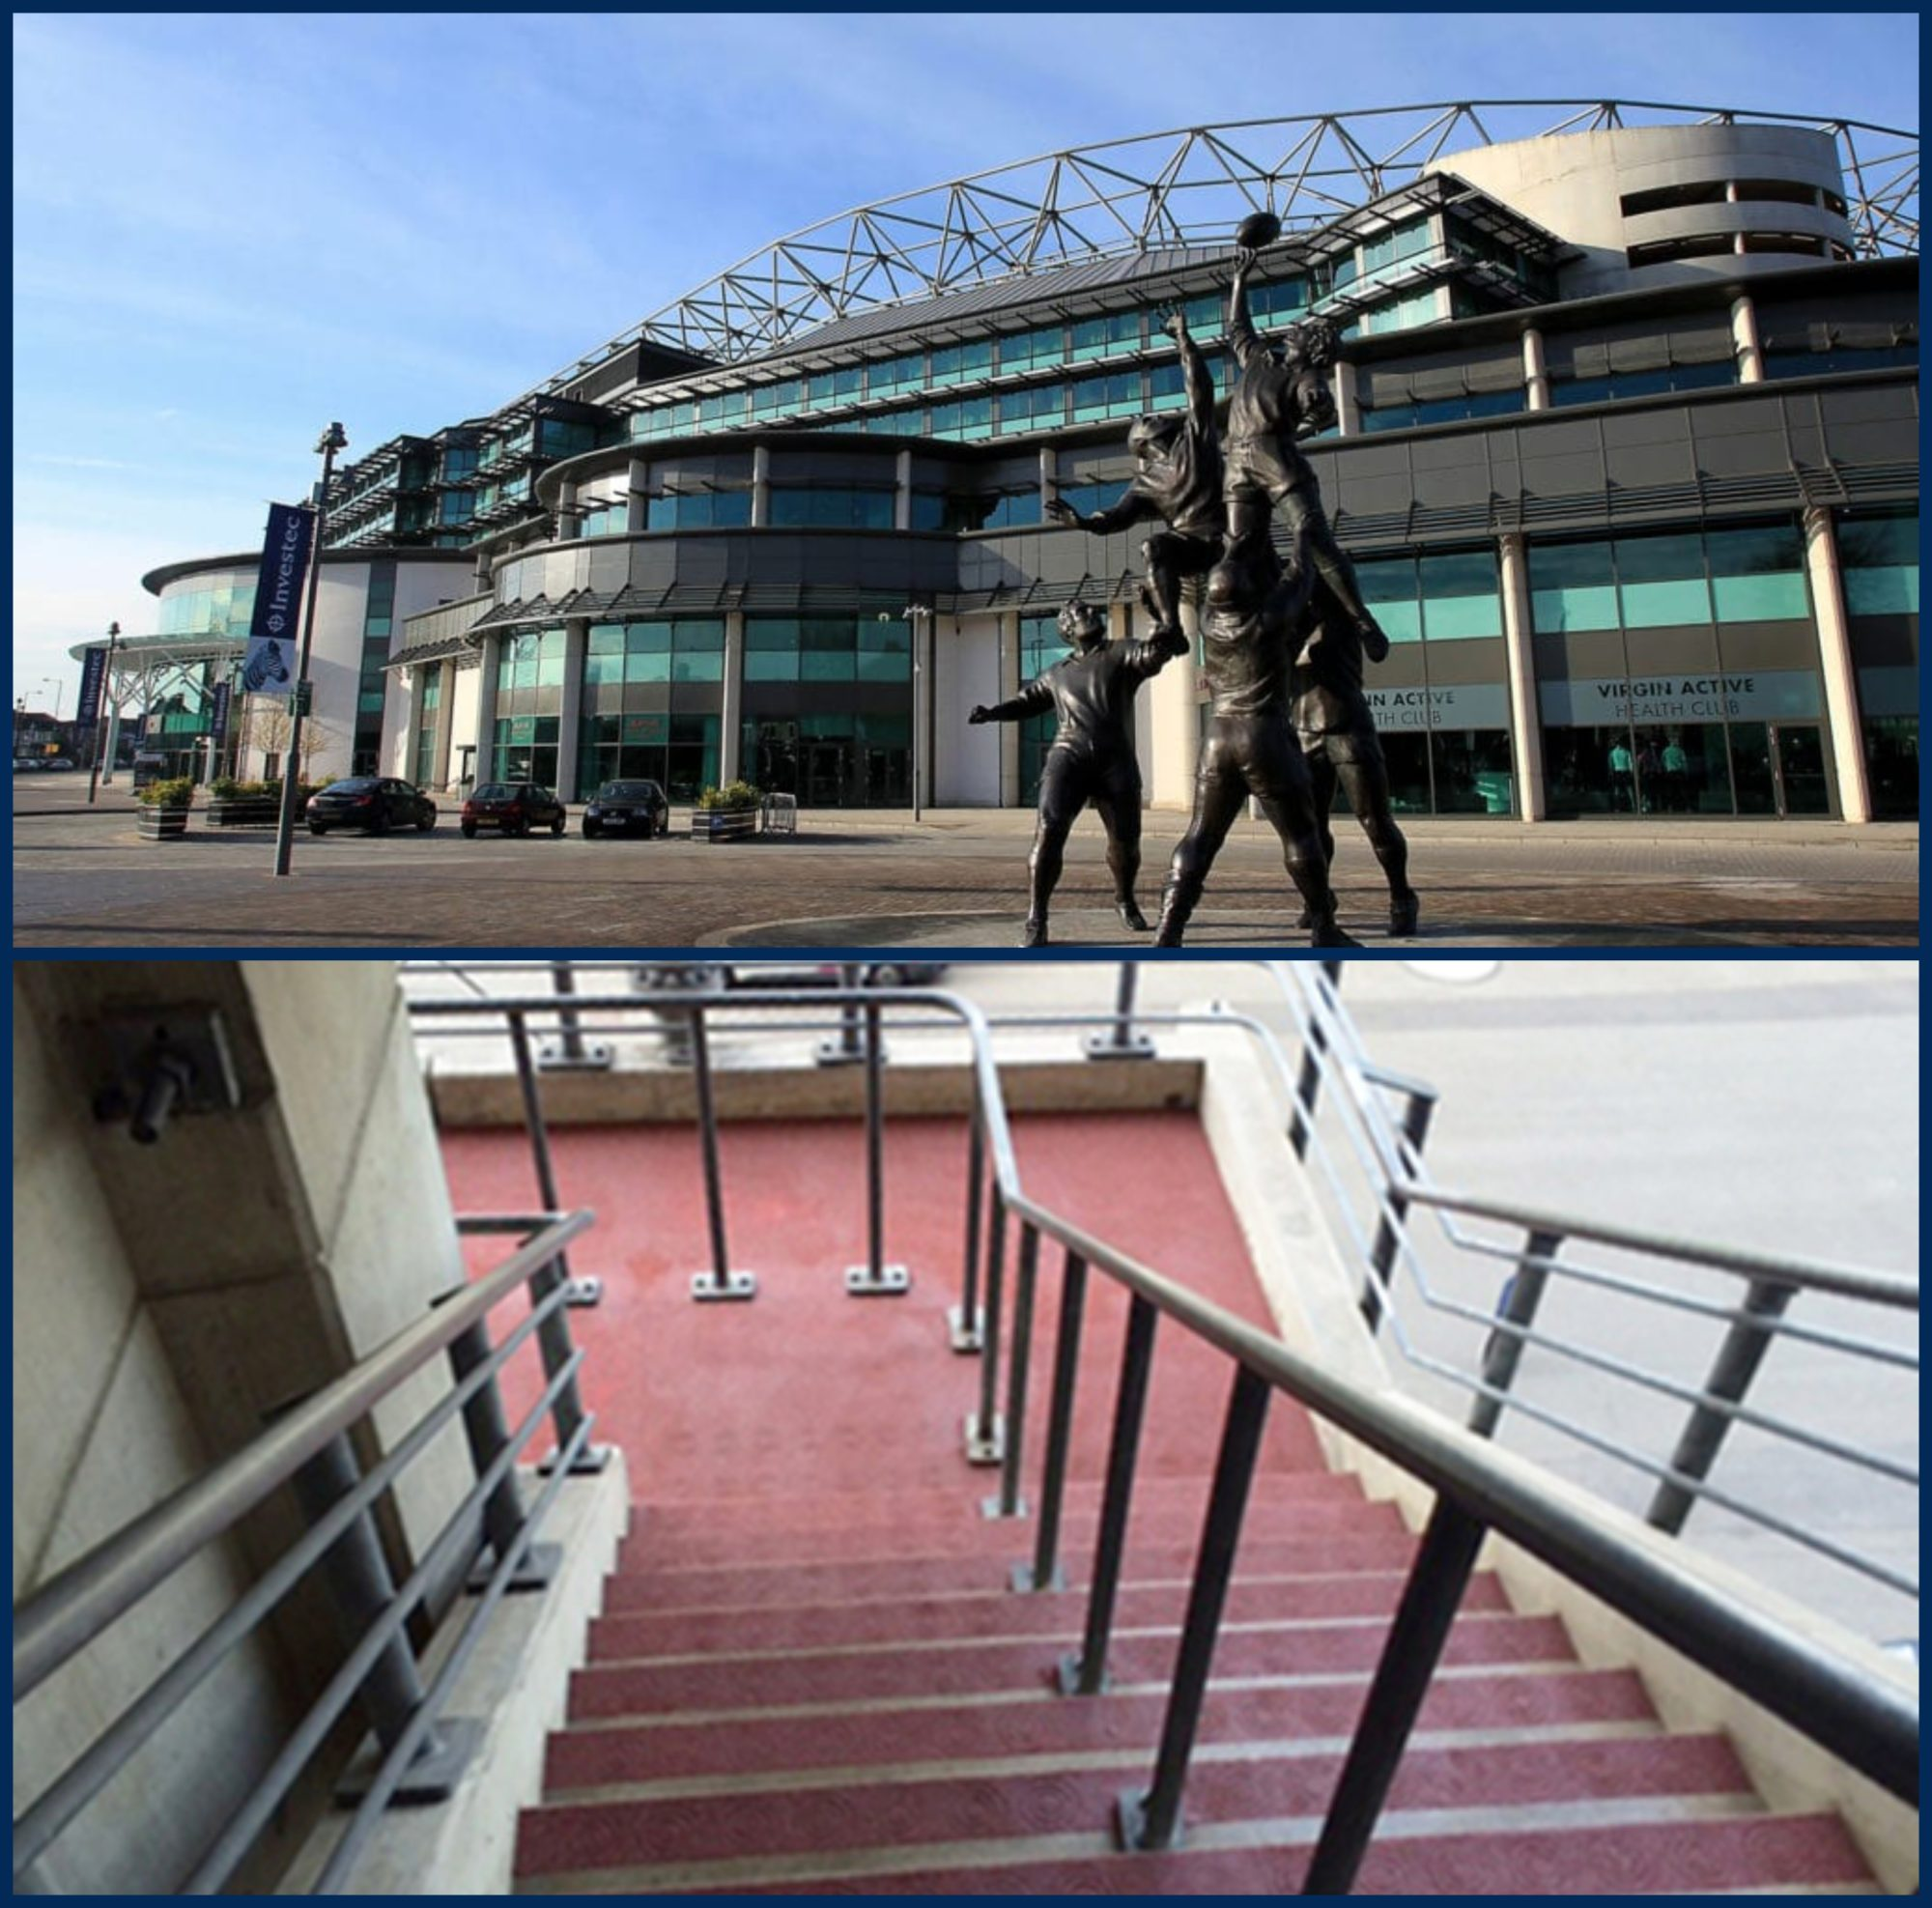 Iconic Structures - Twickenham Stadium